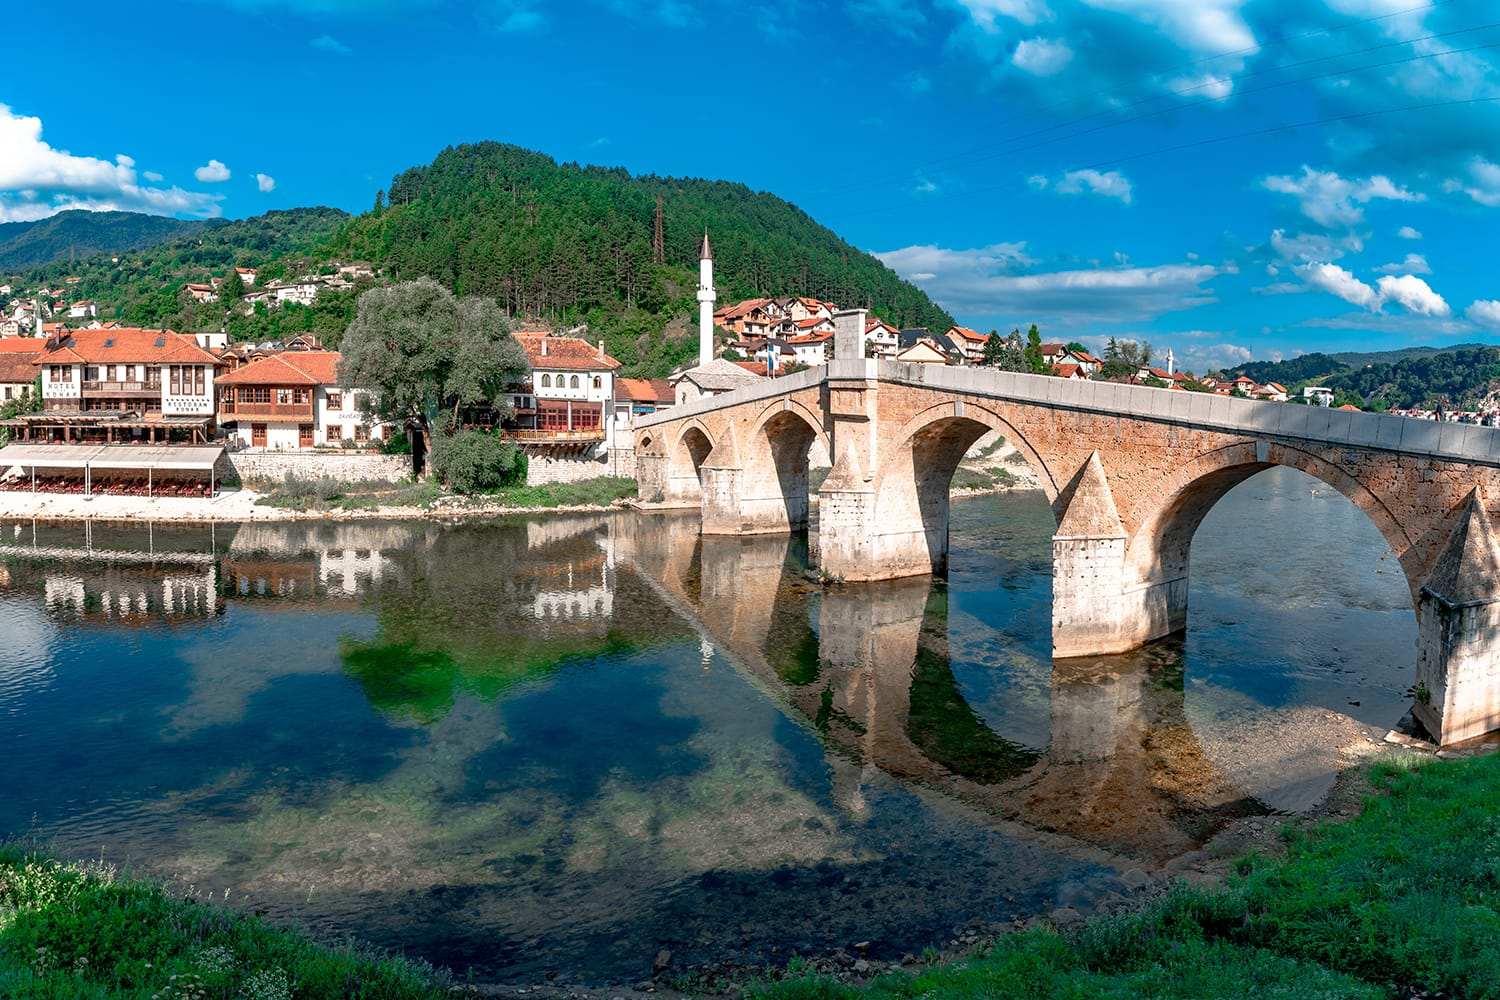 Old Bridge over Neretva River in Konjic, a small town in Bosnia and Herzegovina.